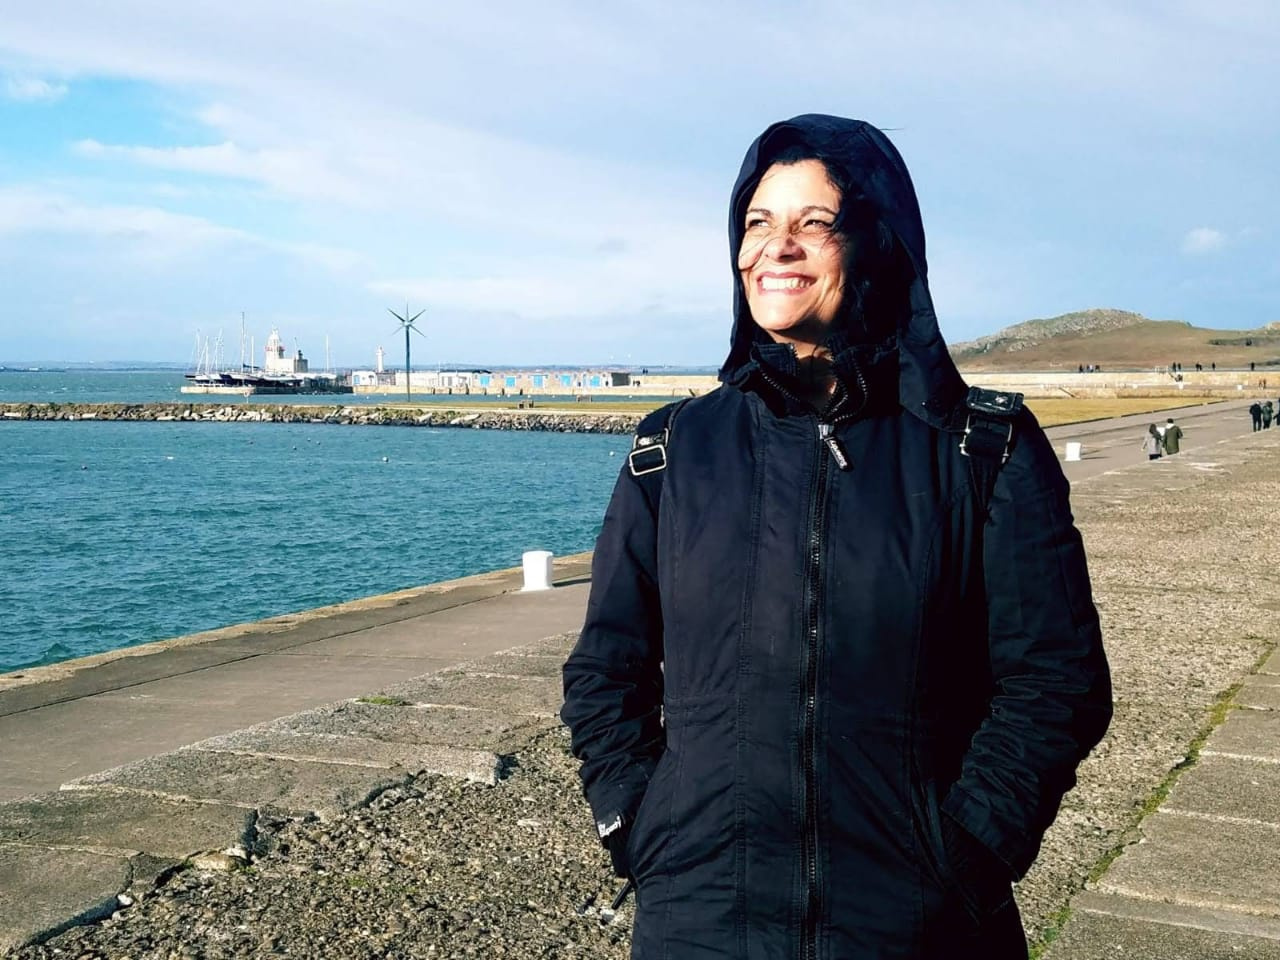 Lúcia enjoying her free time in Howth.